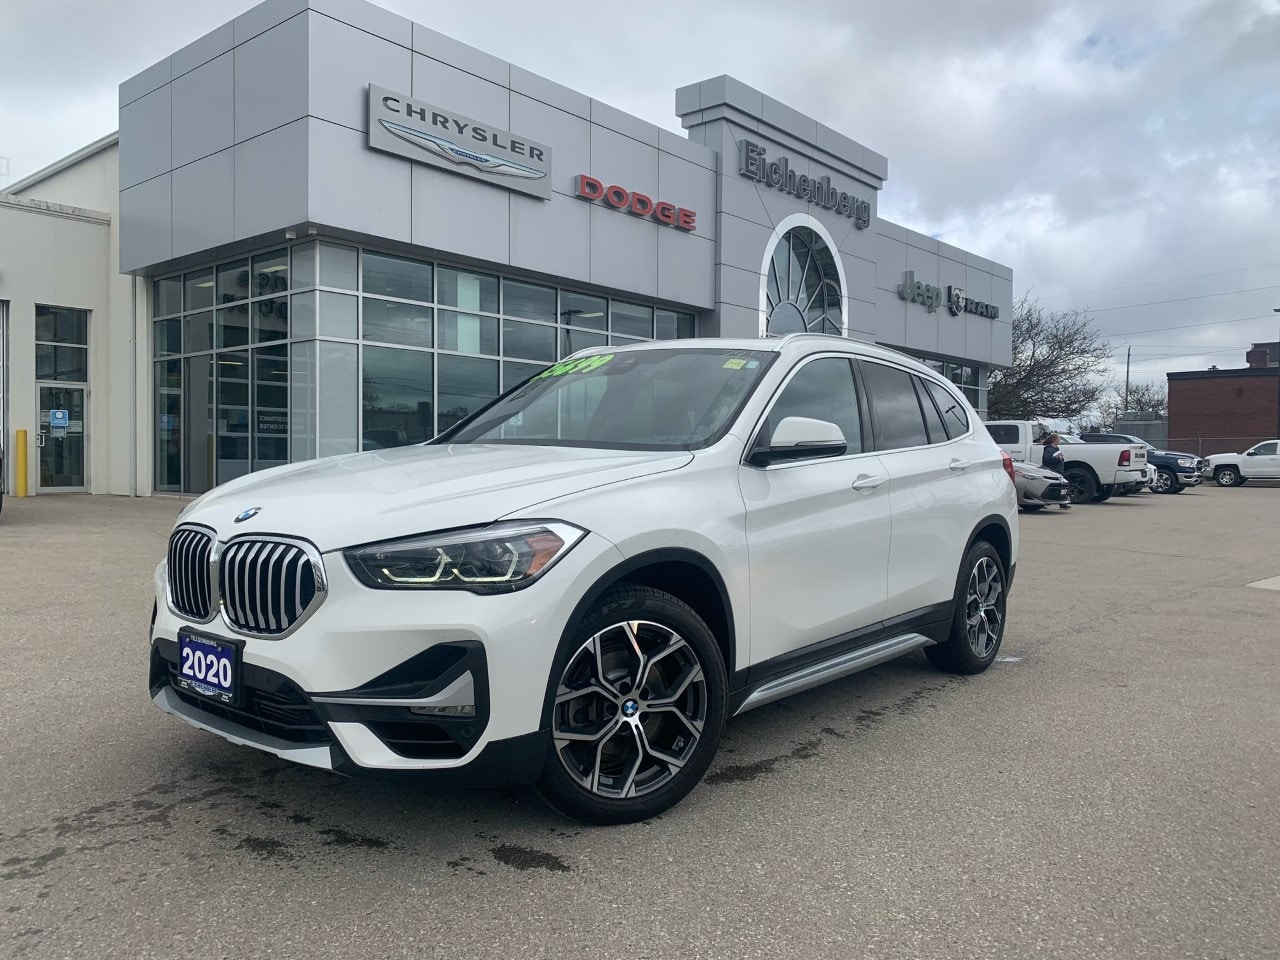 used 2020 BMW X1 car, priced at $35,699